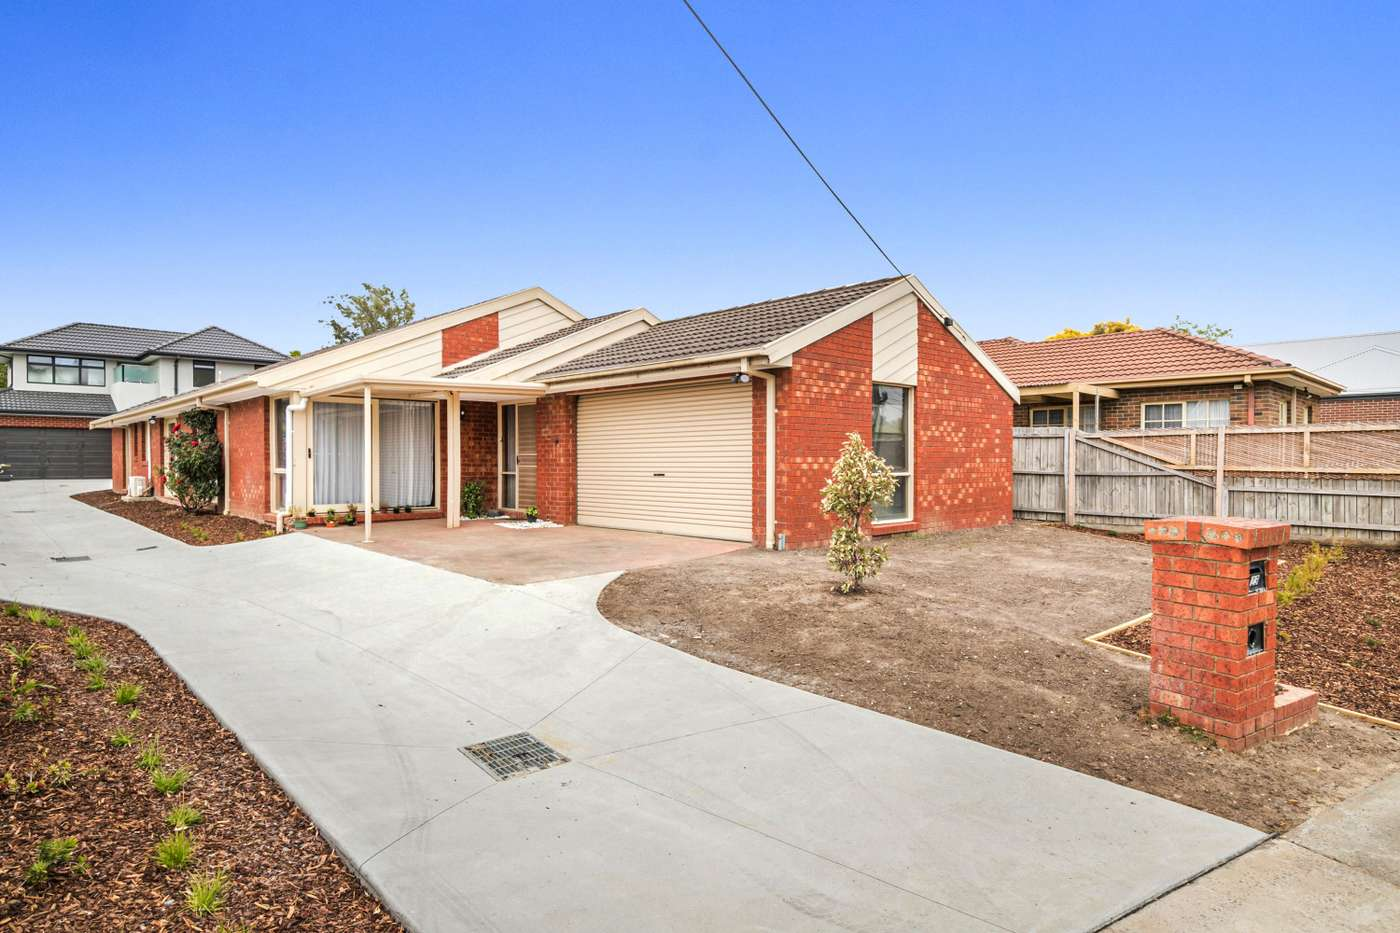 Main view of Homely house listing, 1/23 Blind Creek Lane, Wantirna South, VIC 3152